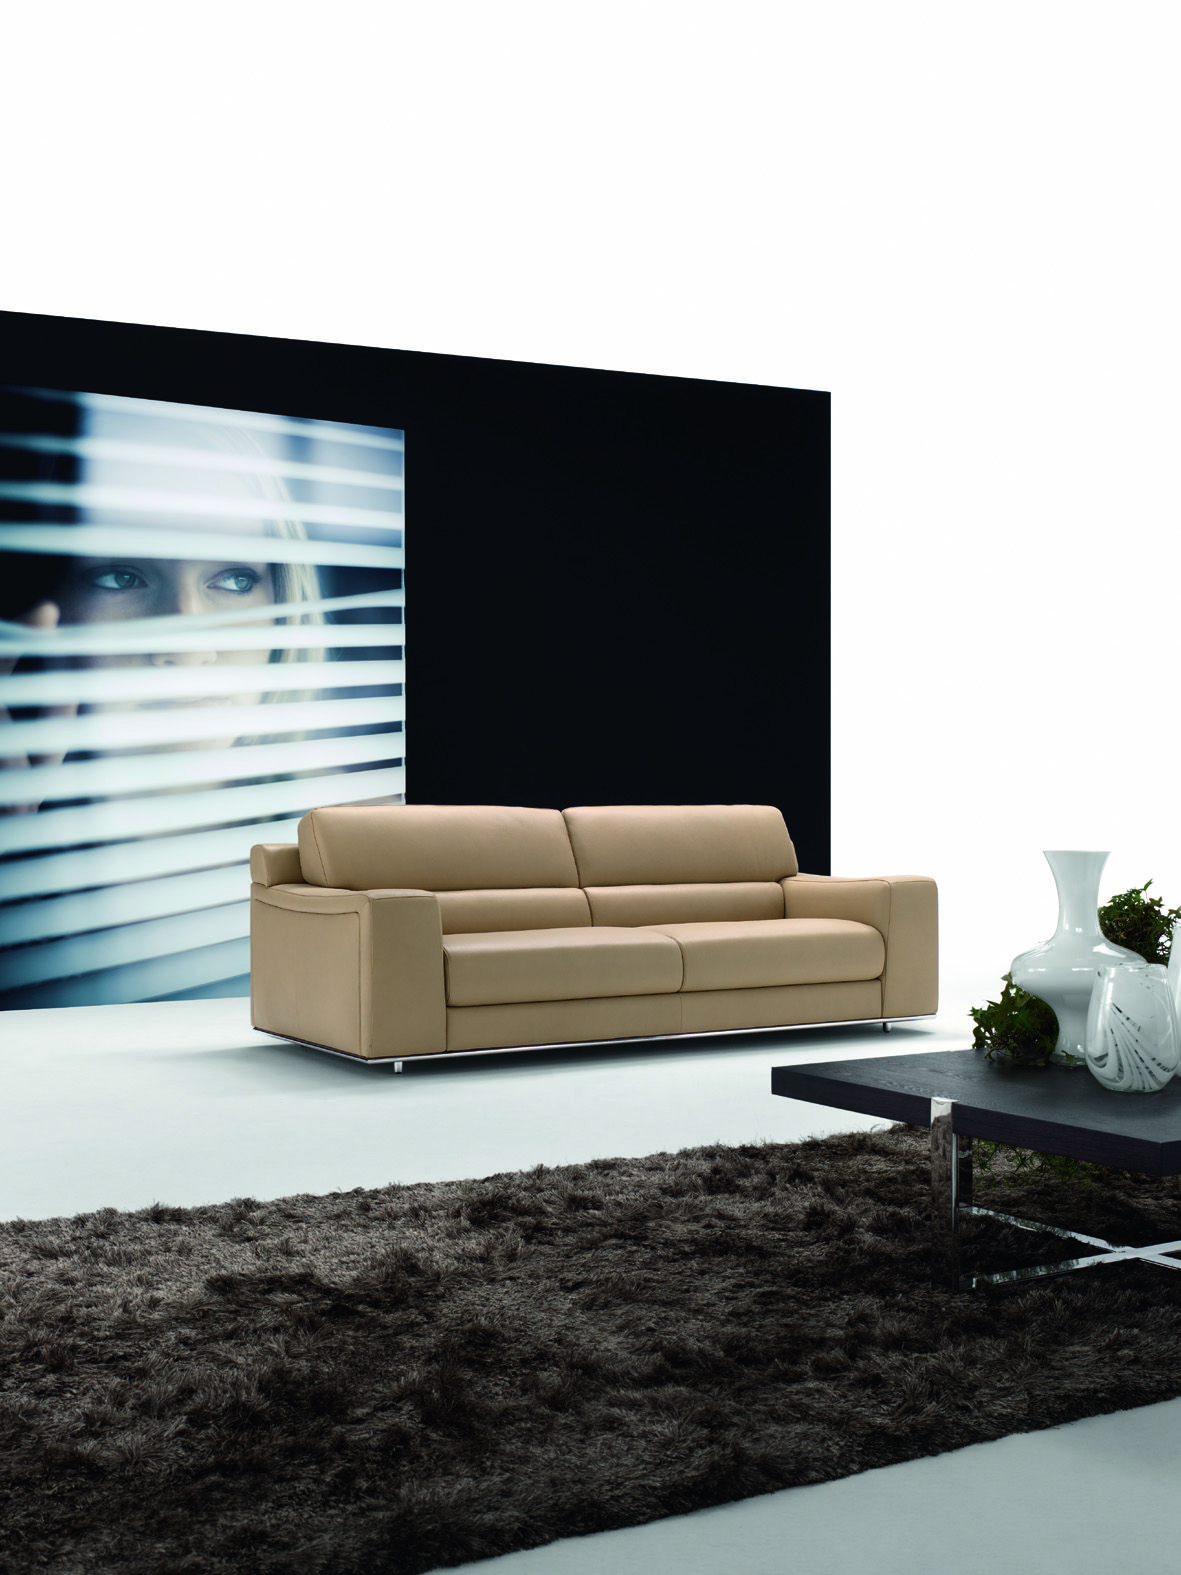 Fabio And Co Is Proud To Offer You 100 Genuine Italian Sofas Over 200 Exclusive Models To Italian Furniture Modern Italian Leather Sofa Italian Furniture